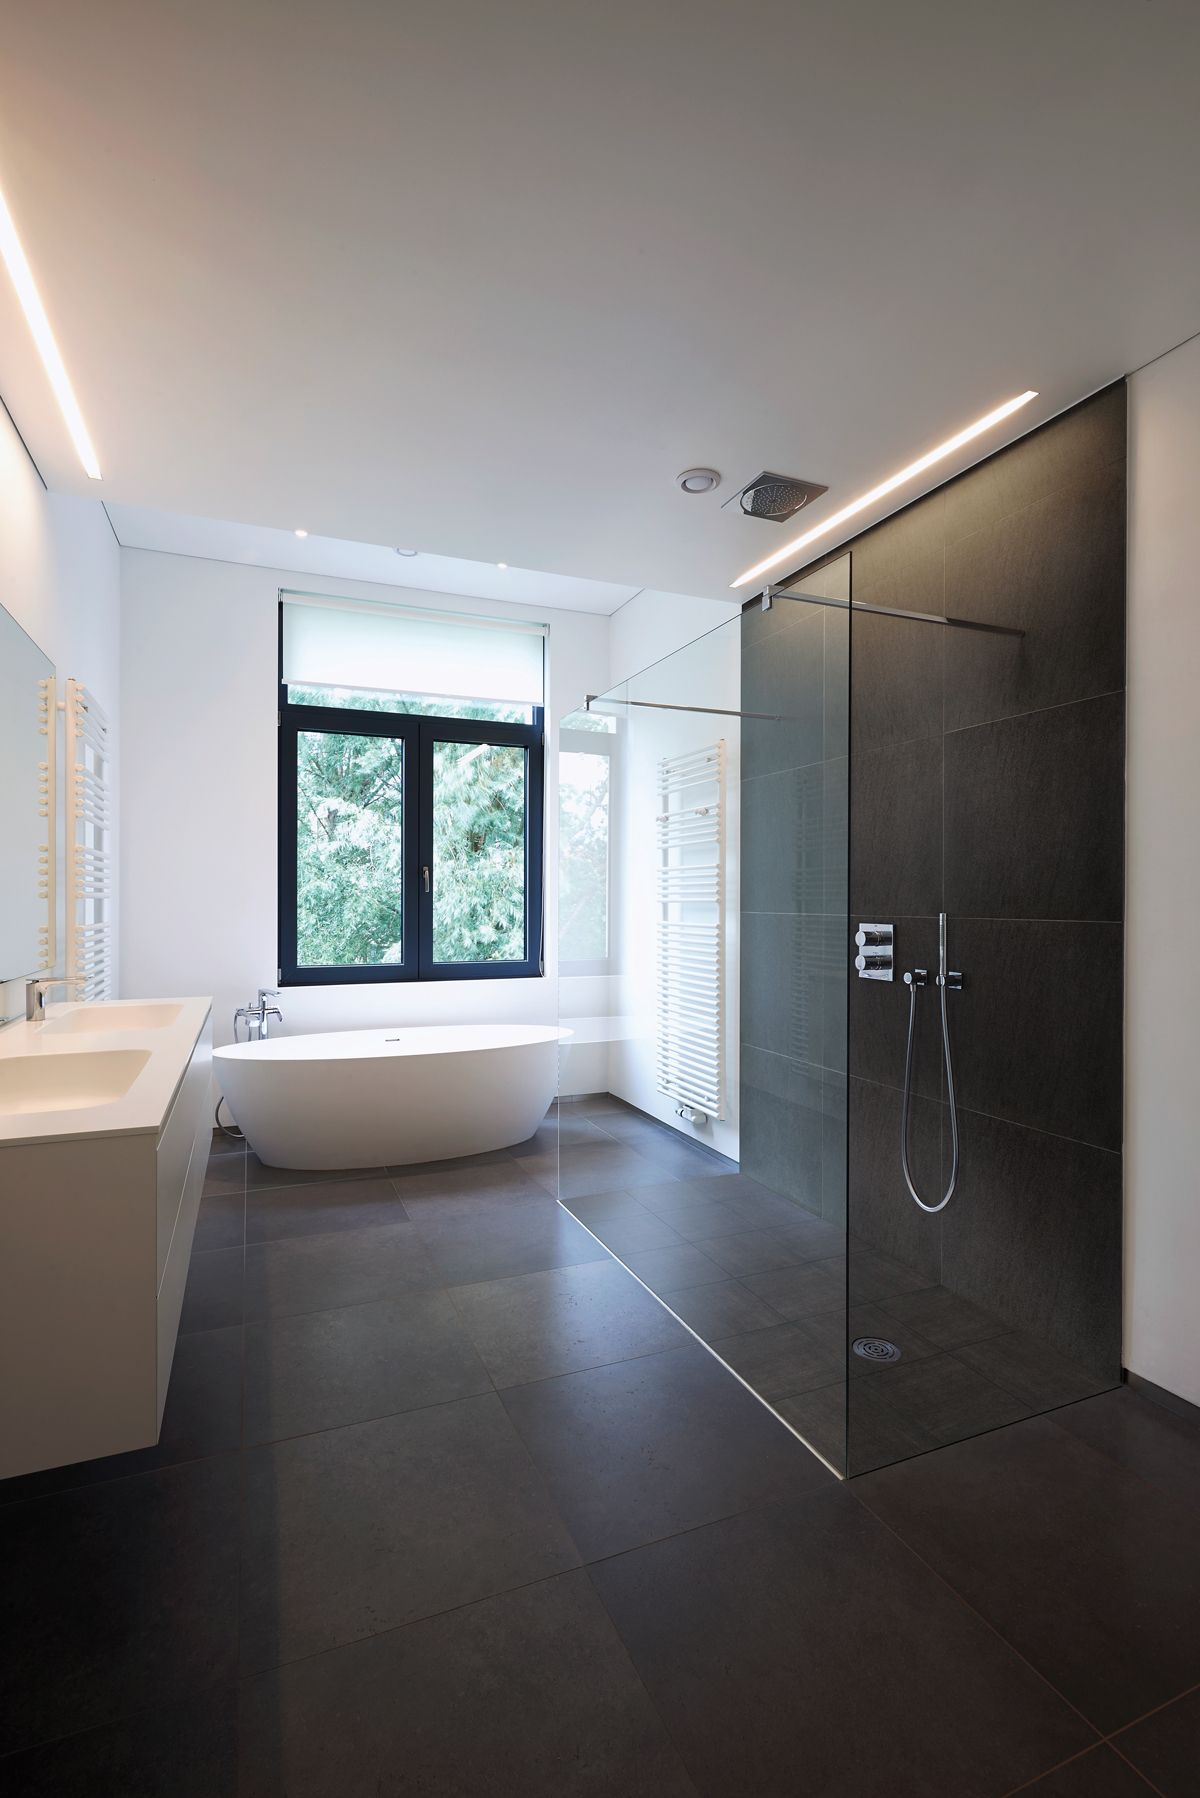 Eclipse Zenith  Davos Nero Matt  Inspiring Choices 2017 Fair Bathroom Remodeling Service Design Decoration